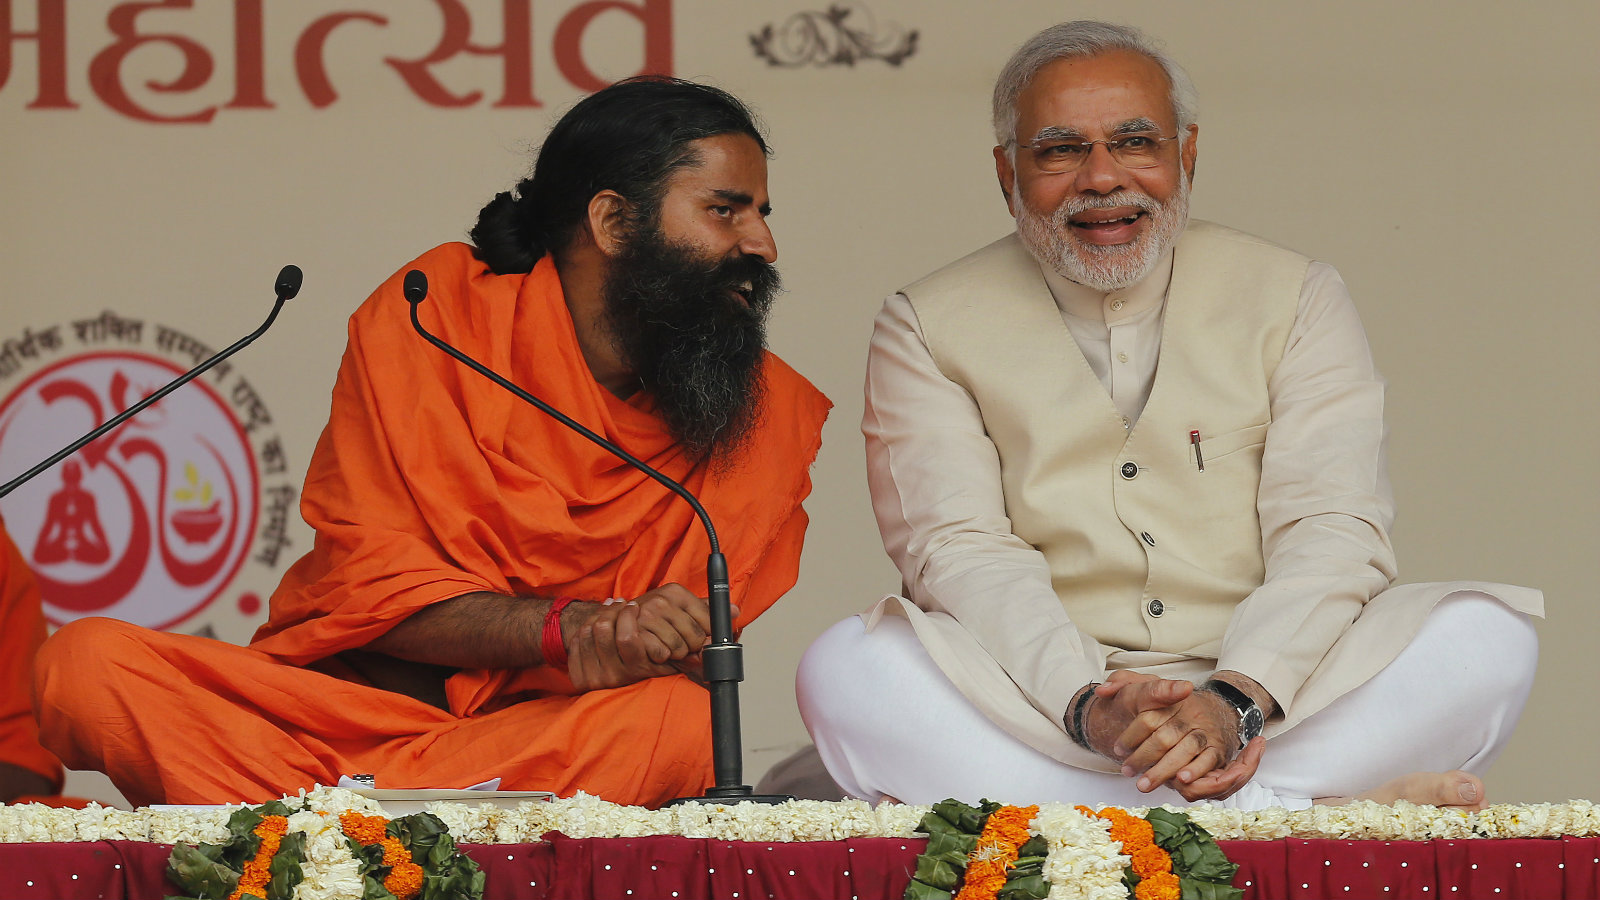 Hindu nationalist Narendra Modi, prime ministerial candidate for India's main opposition Bharatiya Janata Party (BJP) shares a moment with Indian yoga guru Baba Ramdev (L) during a Yoga Mahotsav or festival, in New Delhi March 23, 2014. The mega 'Yoga Mahotsav' on Sunday is being observed simultaneously at various places across the country, local media reported. i